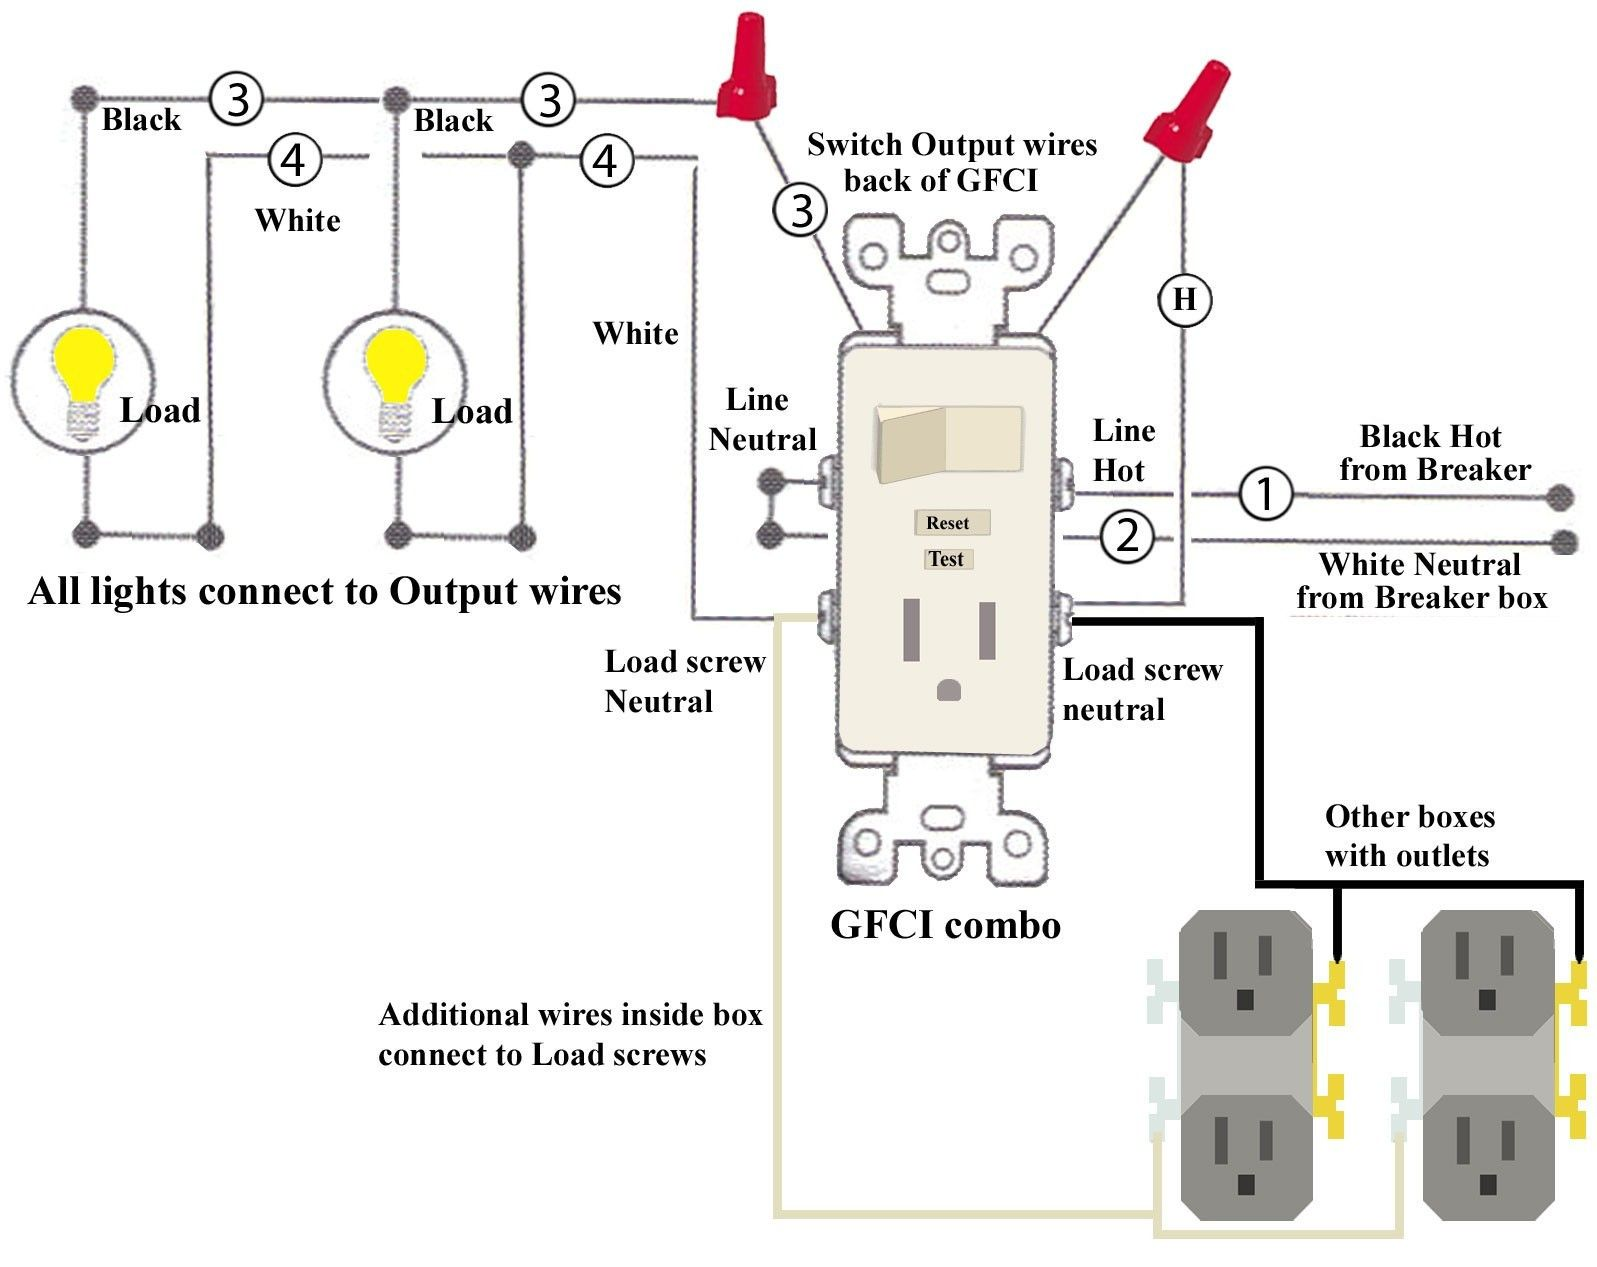 unique wiring diagram for olympian generator #diagram #diagramsample  #diagramtemplate #wiringdiagram #diagramchart #worksheet #works… | outlet  wiring, gfci, diagram  pinterest